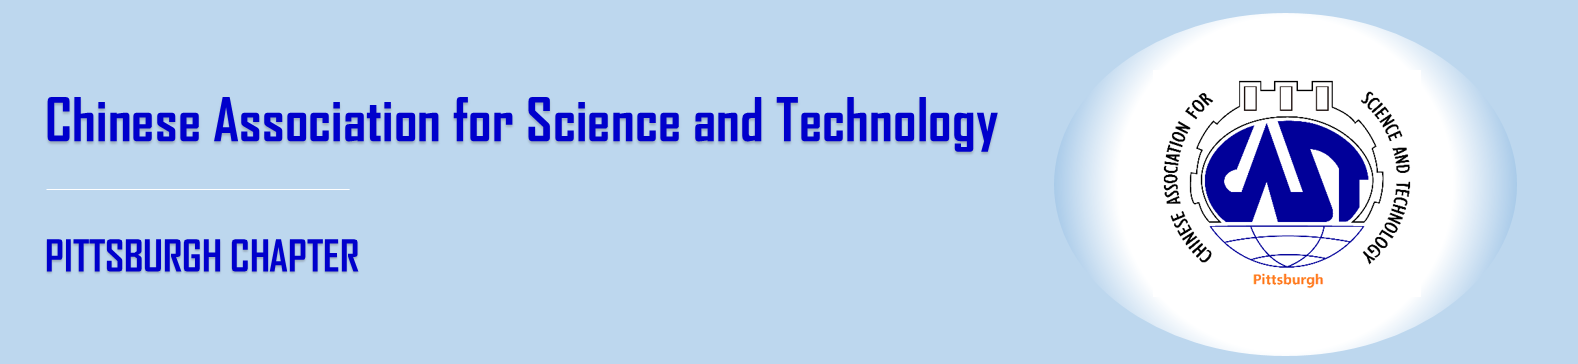 Chinese Association for Science and Technology